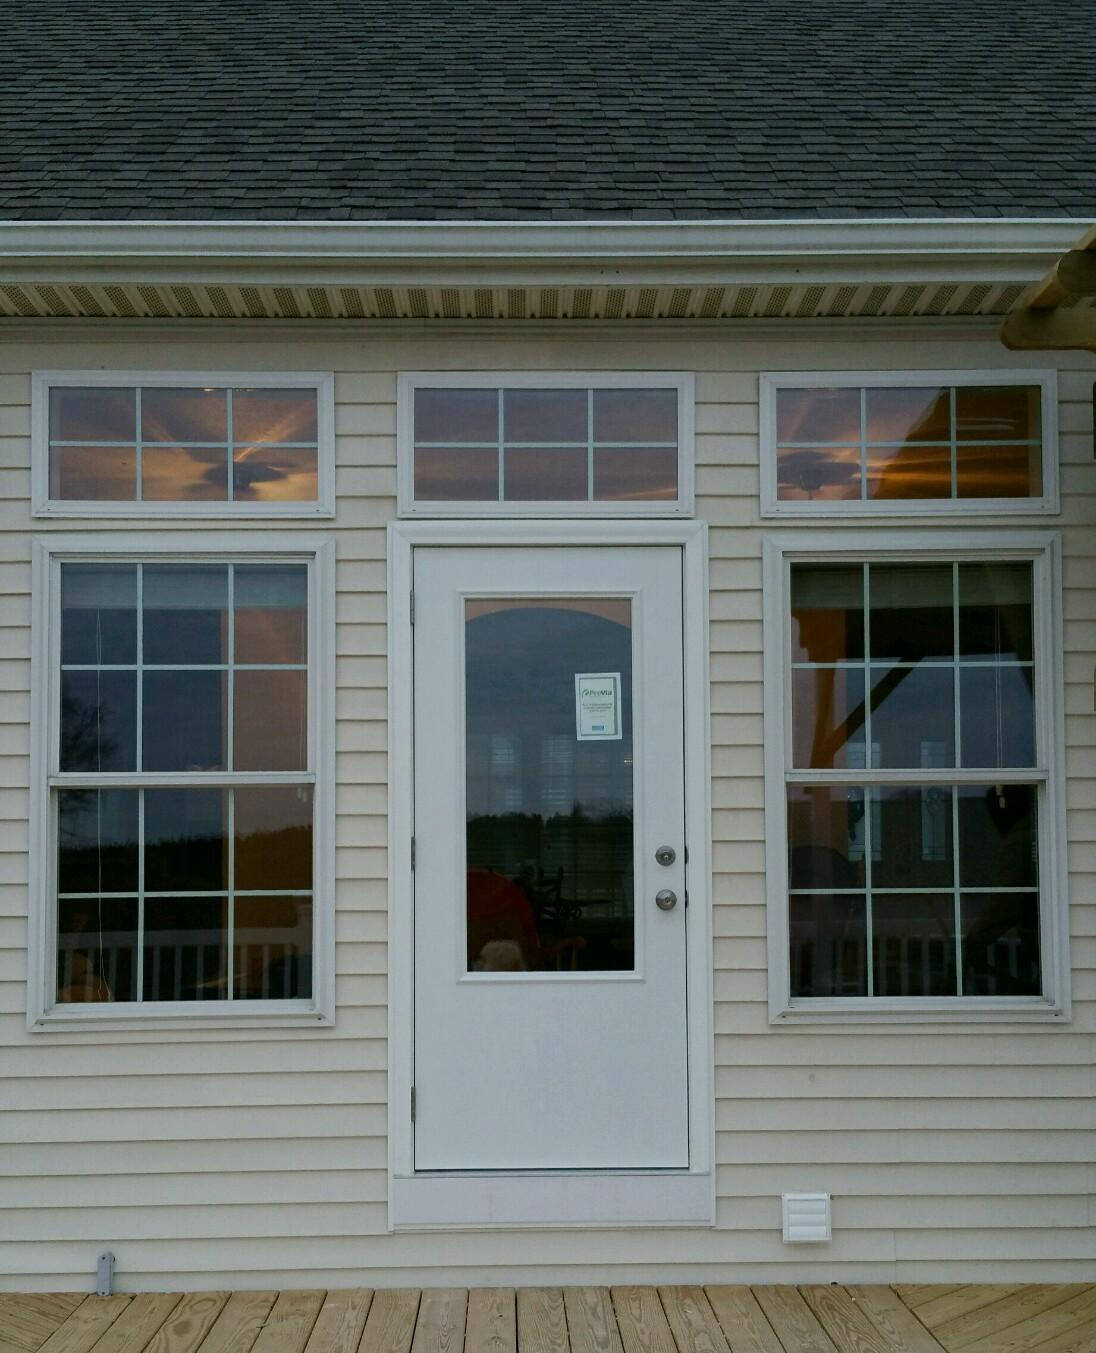 Virginia residential garage doors interior and exterior door galleries service and repair in for Exterior garage doors